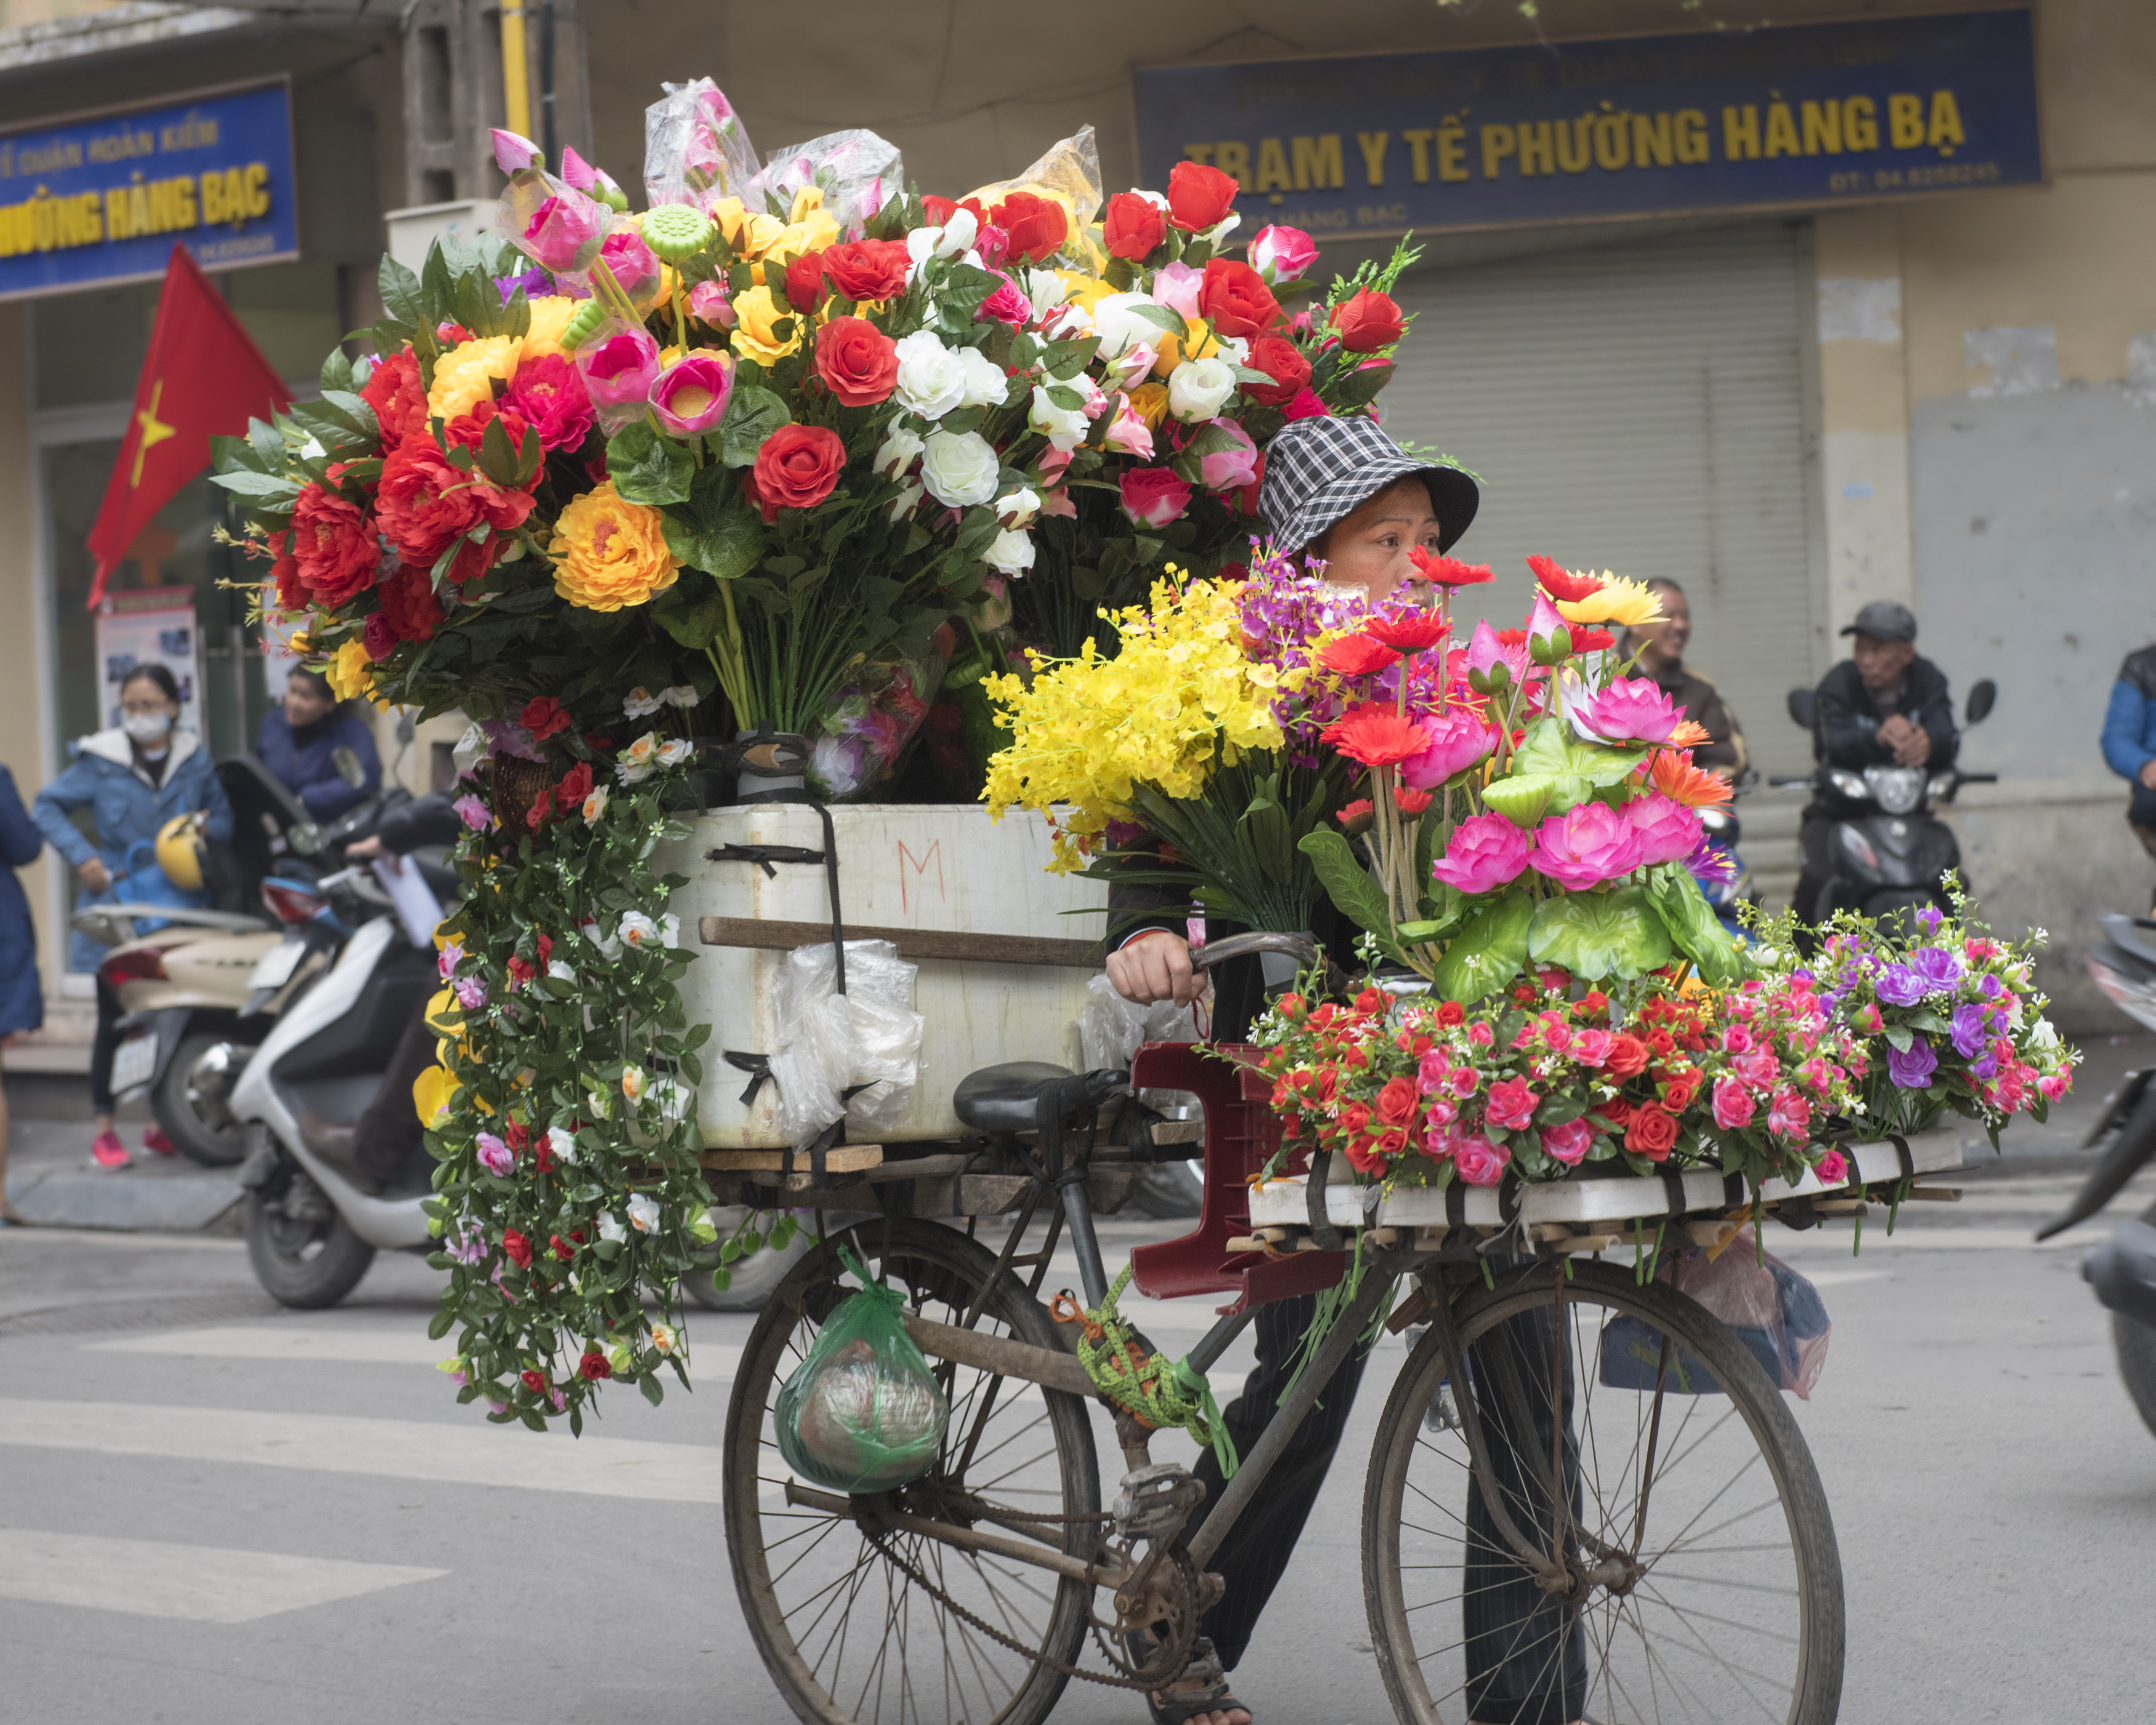 Vietnam cykel med blomster, check point travel